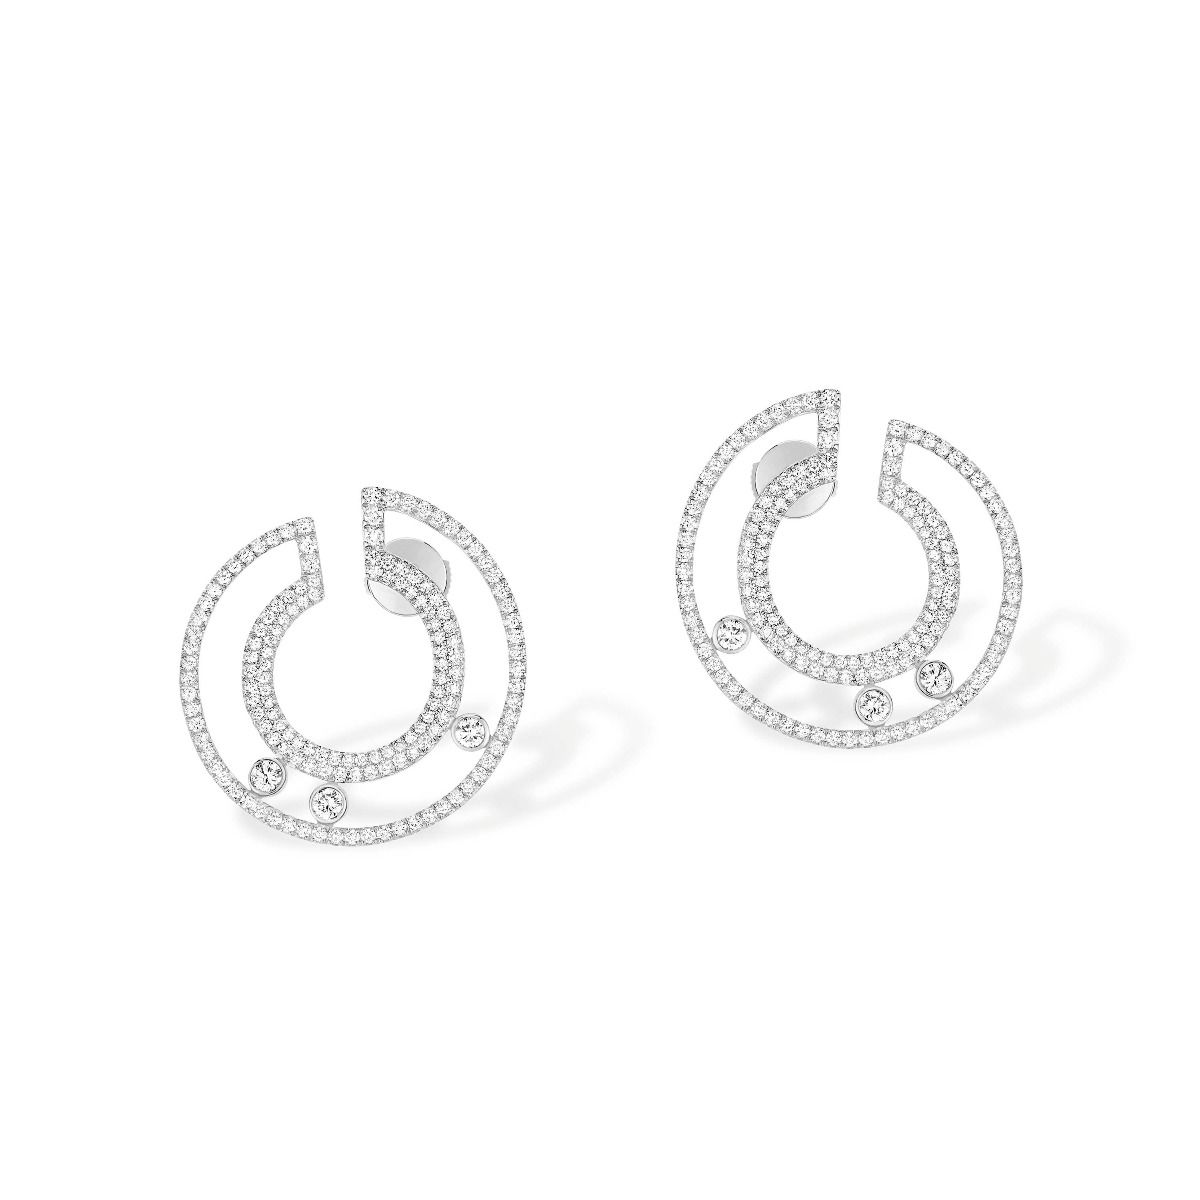 Move Romane Pavé Hoops Pm Earrings - White Gold